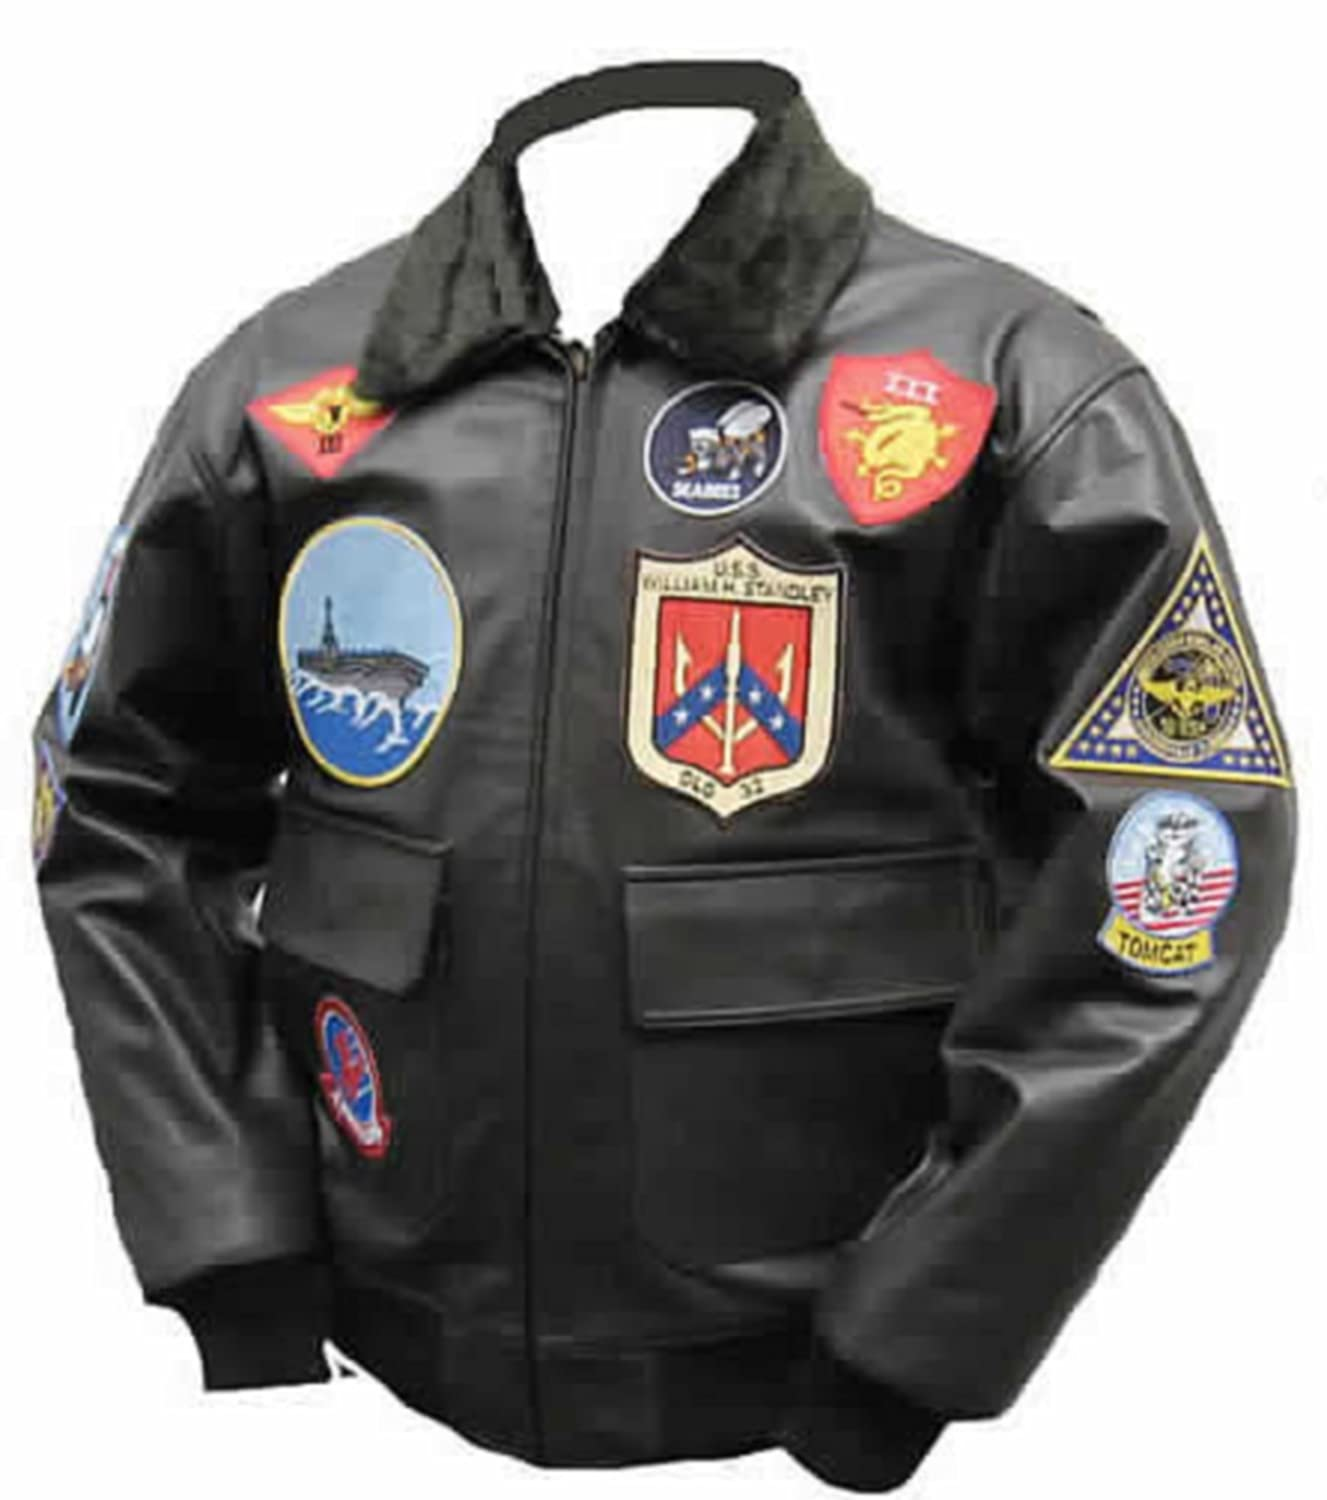 Top Gun Mavericks Fliegerjacke, Stierleder günstig